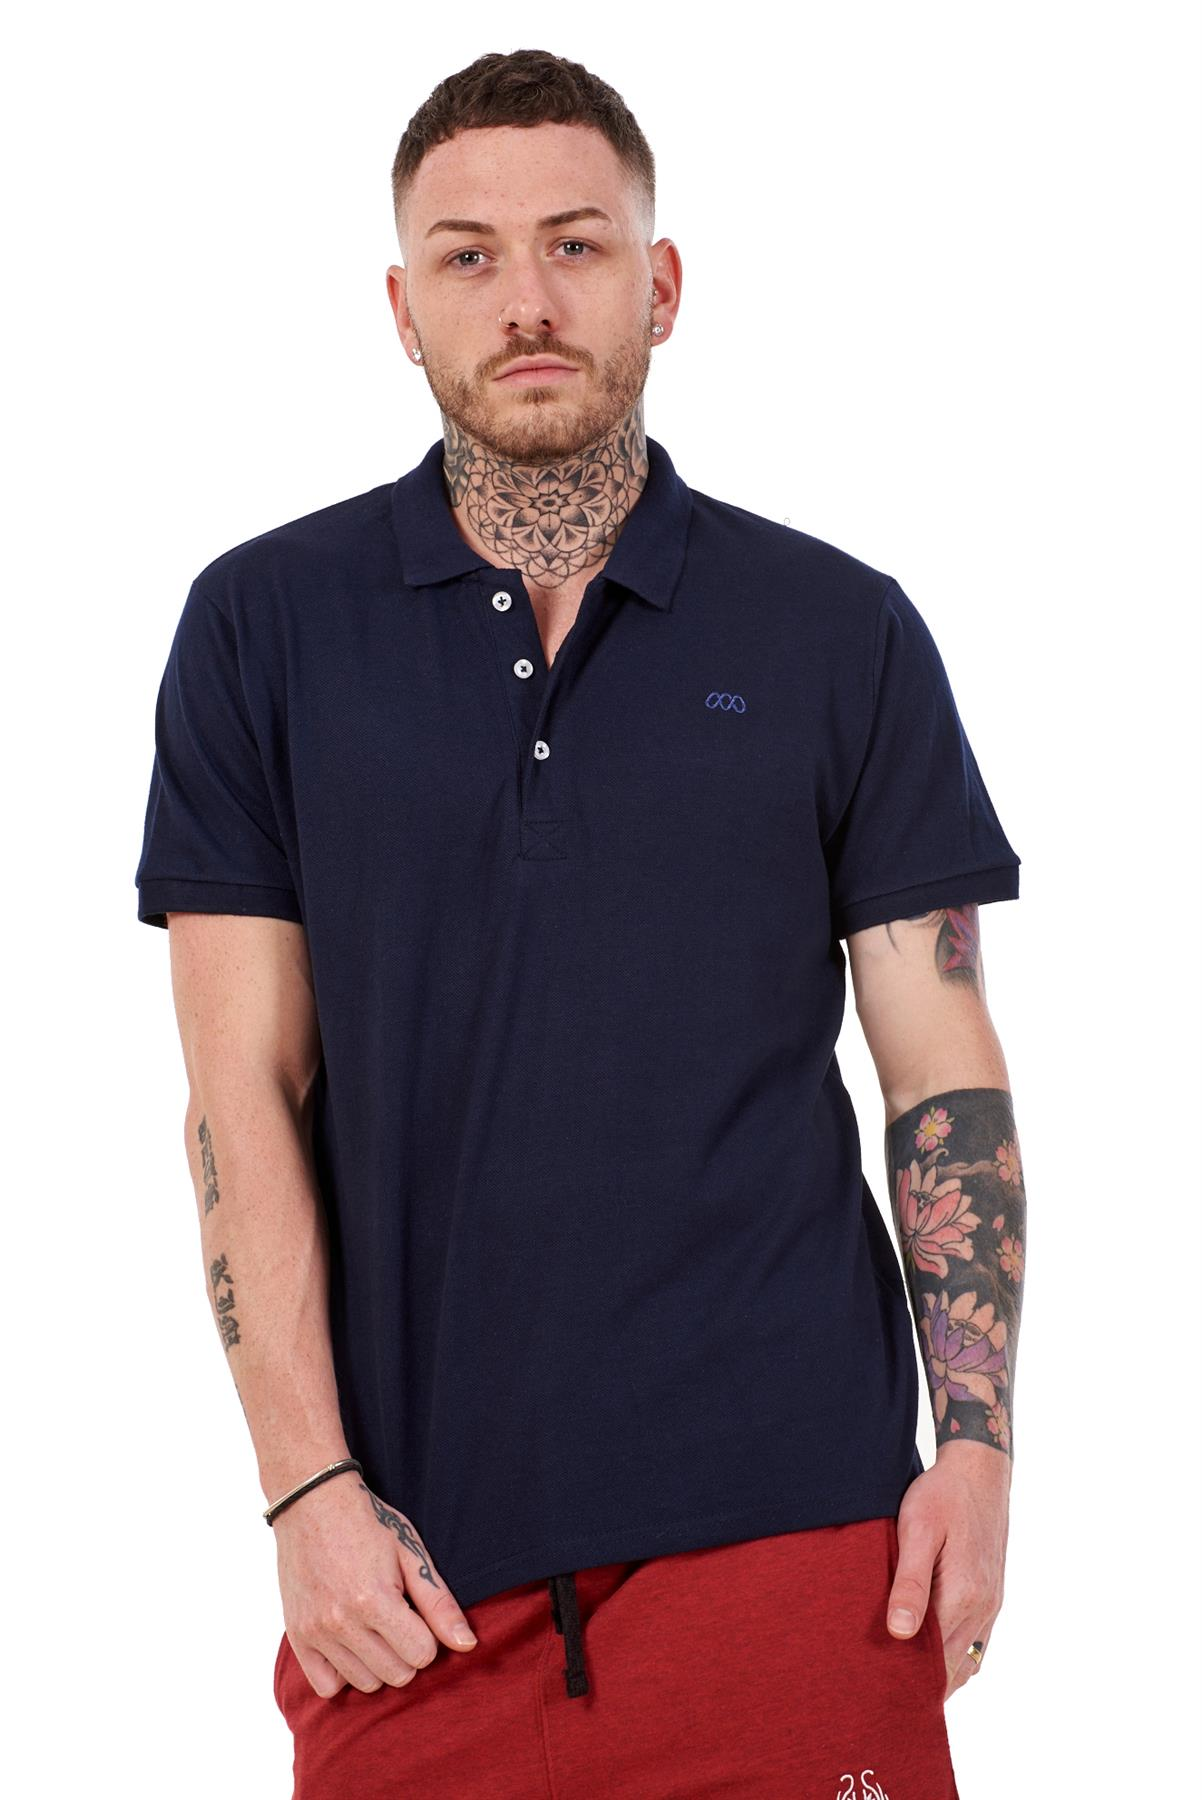 Mens-Plain-Solid-Polo-Cotton-T-Shirts-Regular-fit-Casual-Formal-Shirt-Top-M-XXL thumbnail 23